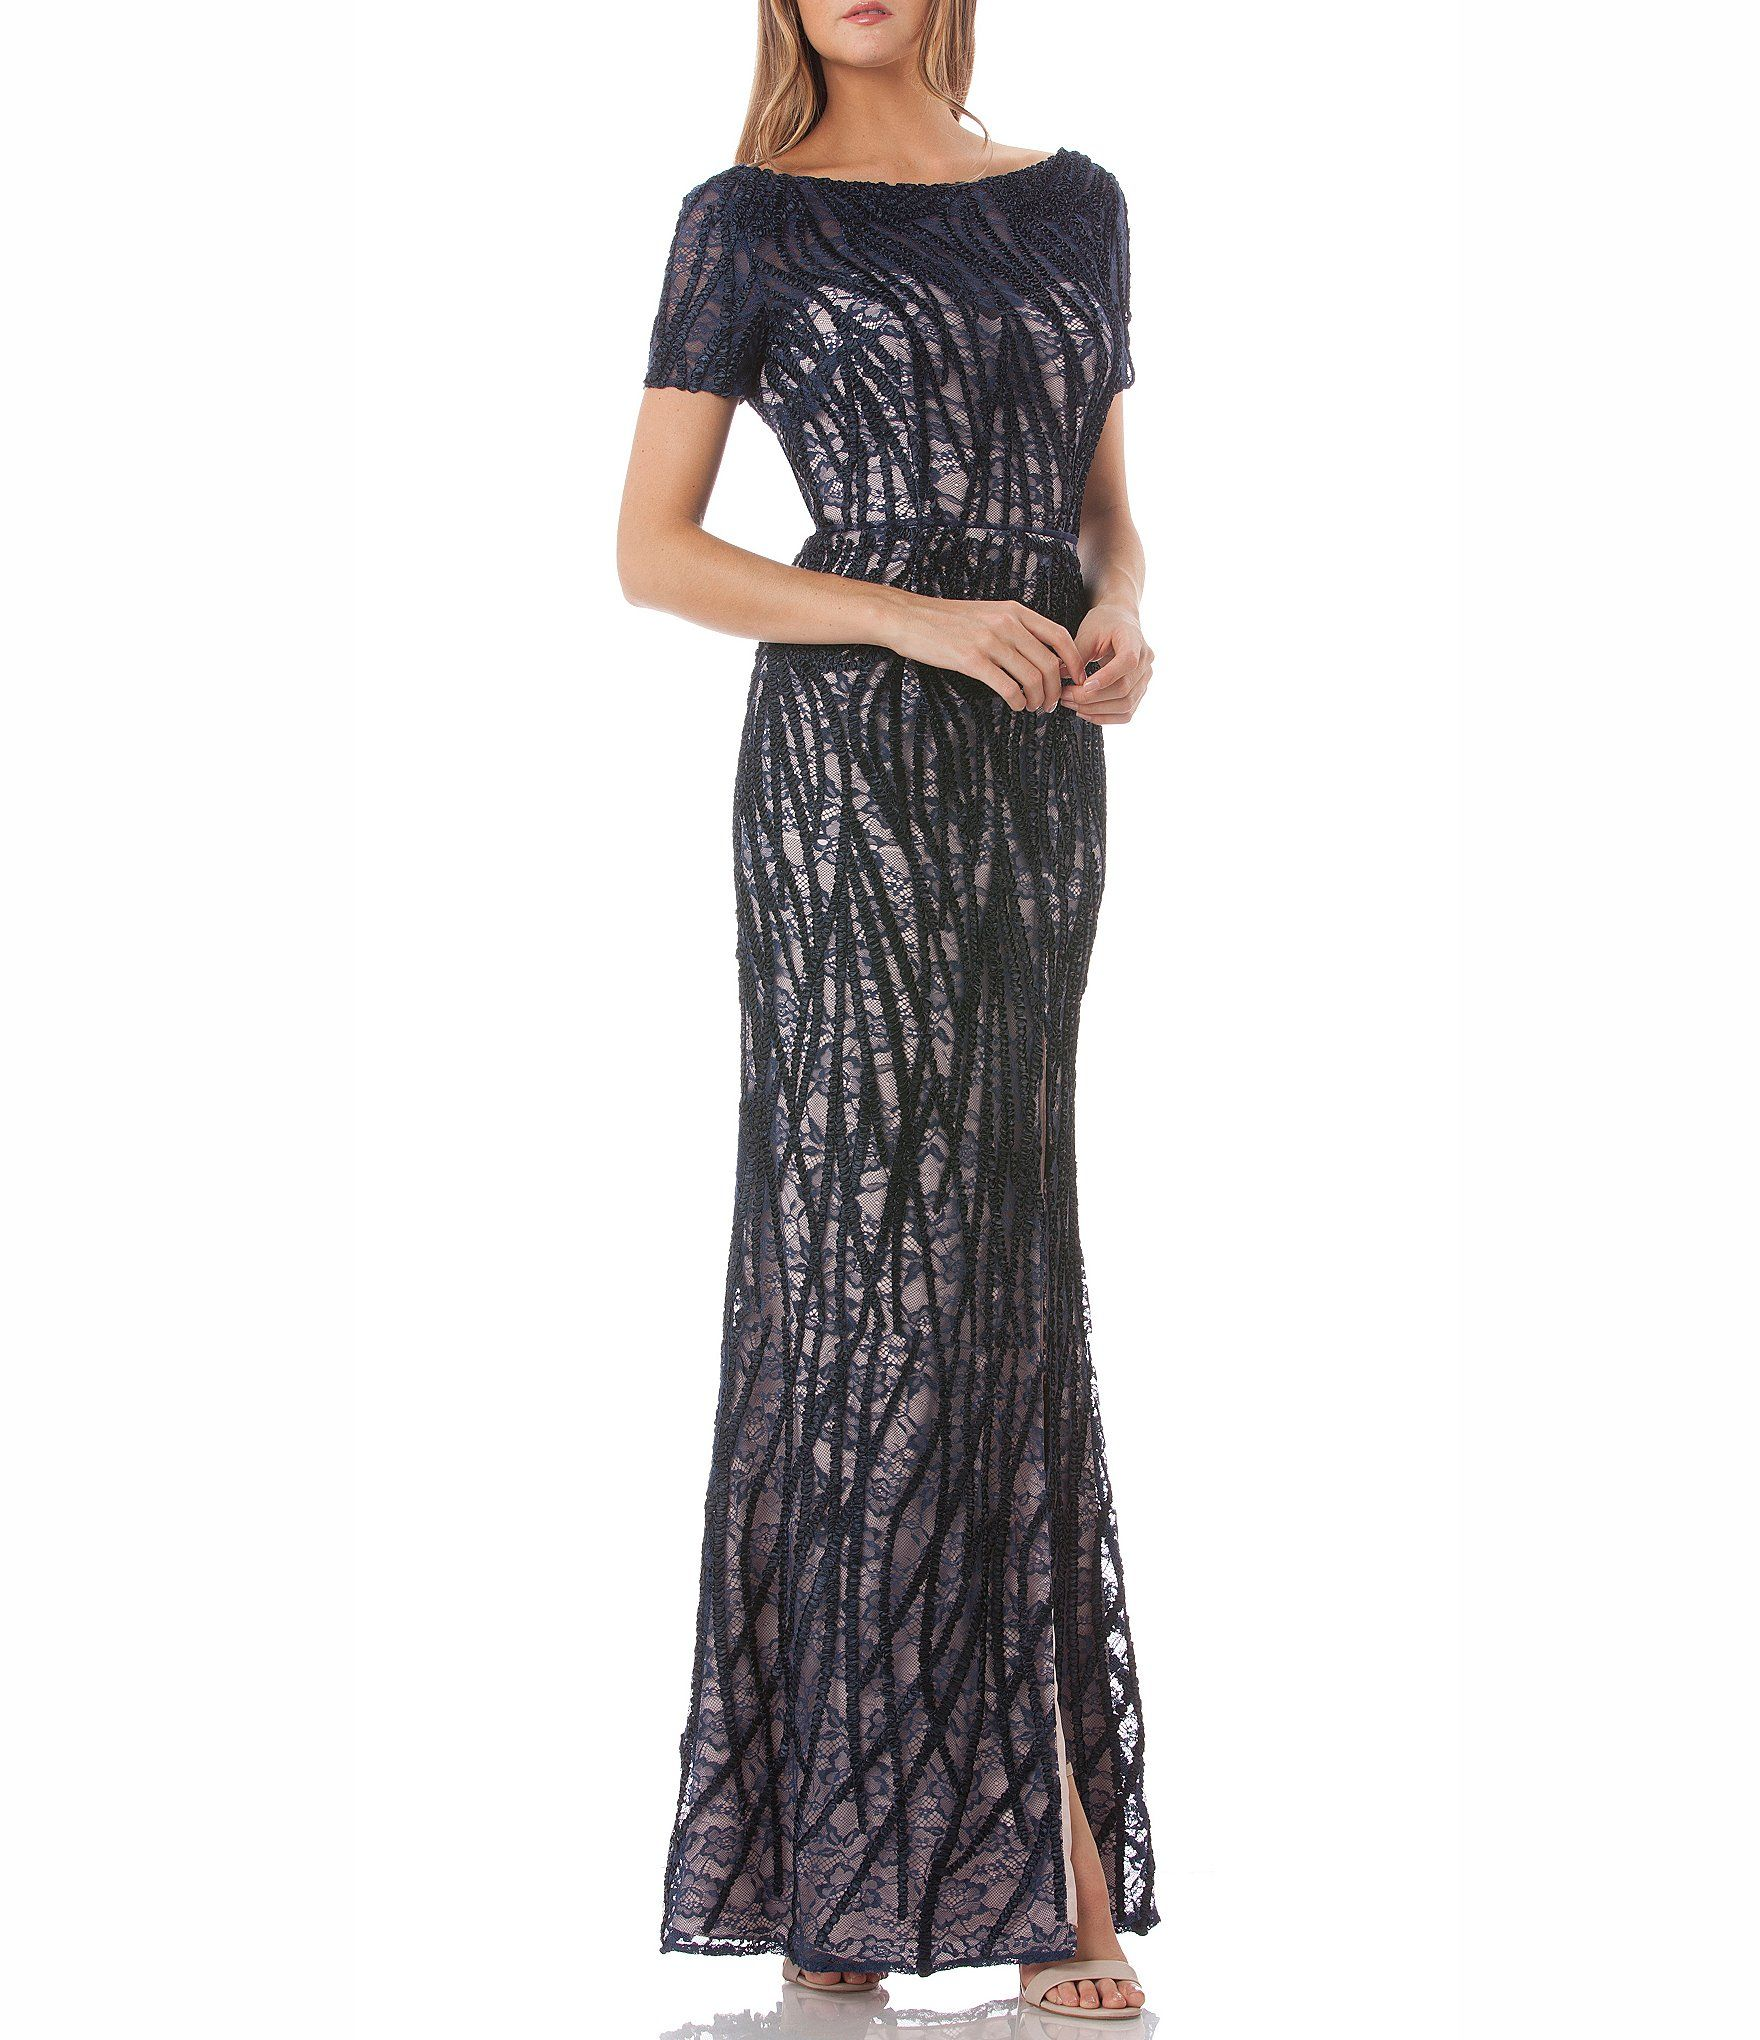 62132475819 JS Collections Illusion Embroidered Lace Gown  Dillards